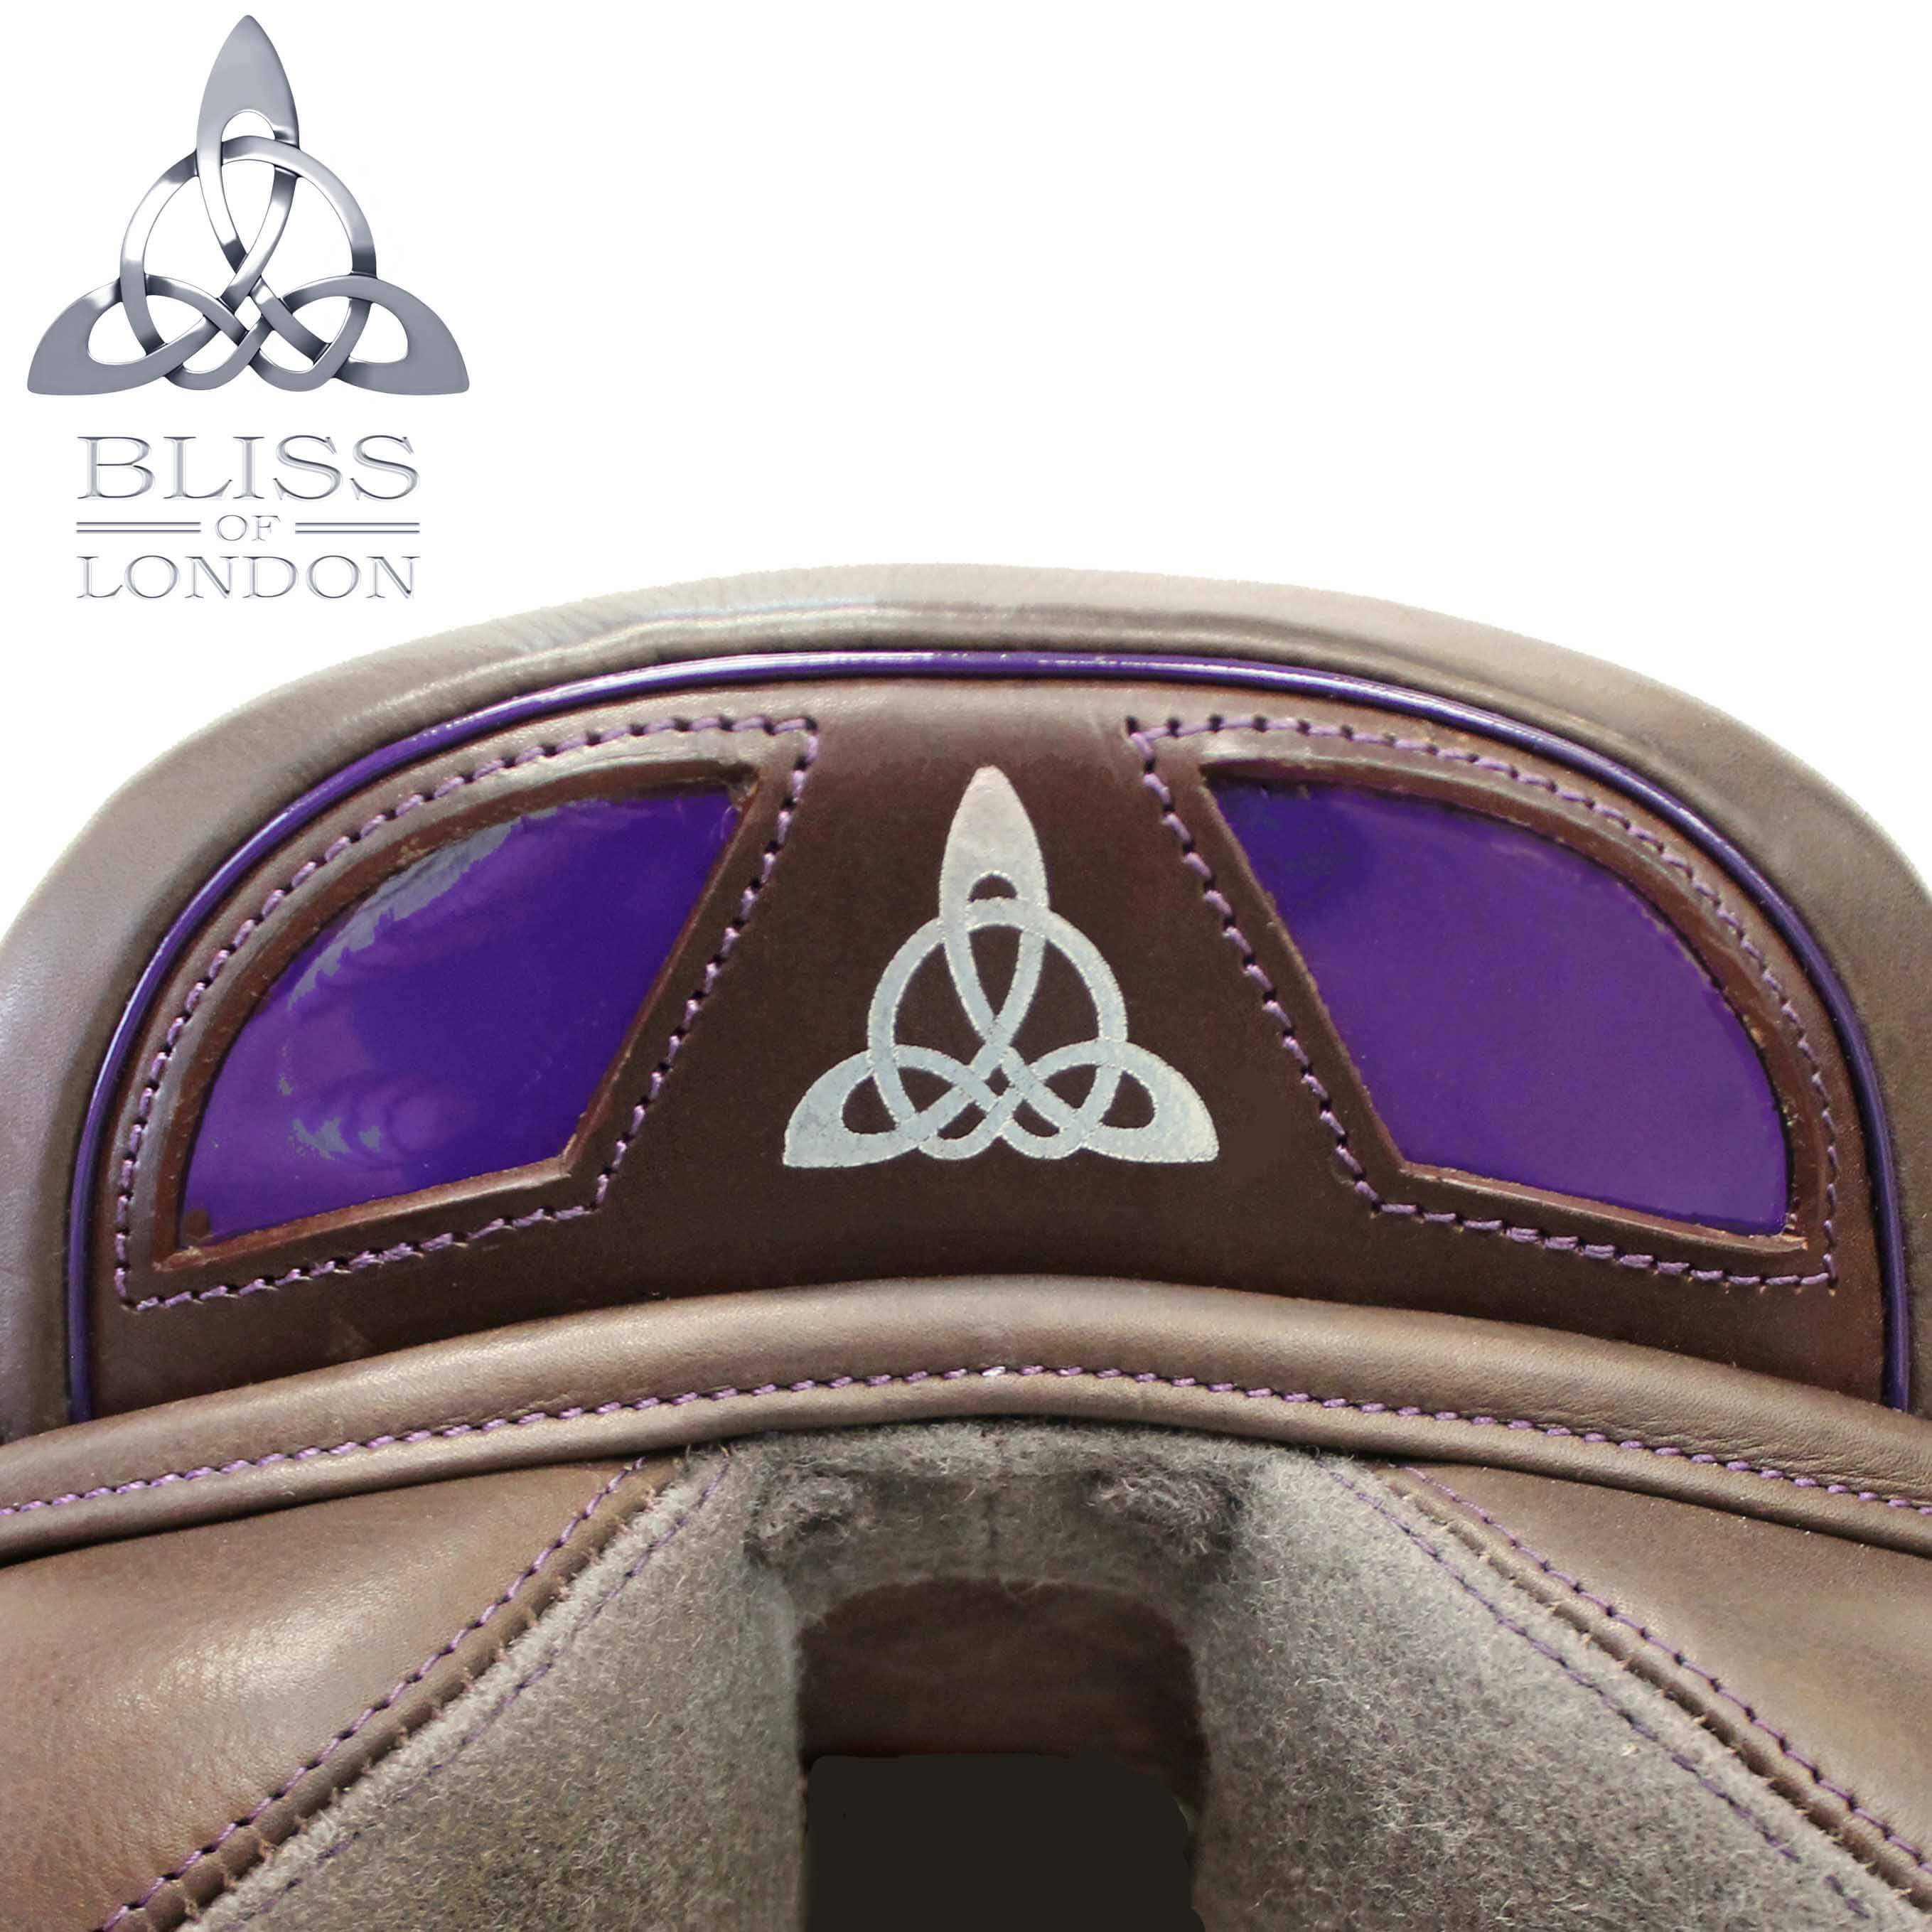 PURPLE SPEED FEATURE CANTLE COCOA BADGE SWAROVSKIS